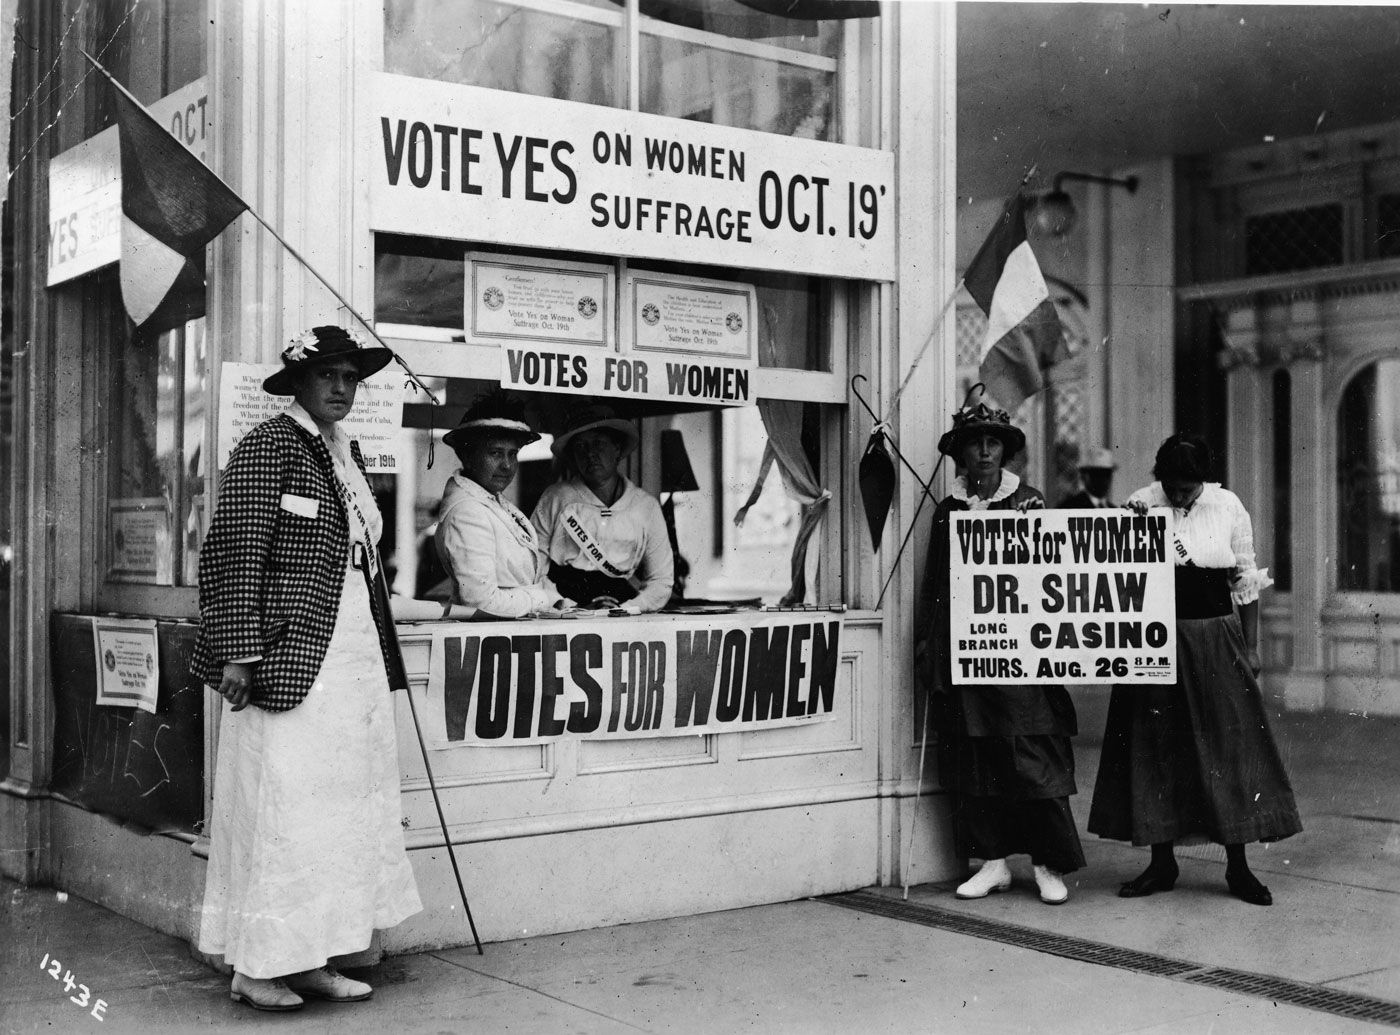 known as women s suffrage the th amendment gives women 1920 known as women s suffrage the 19th amendment gives women the right to vote